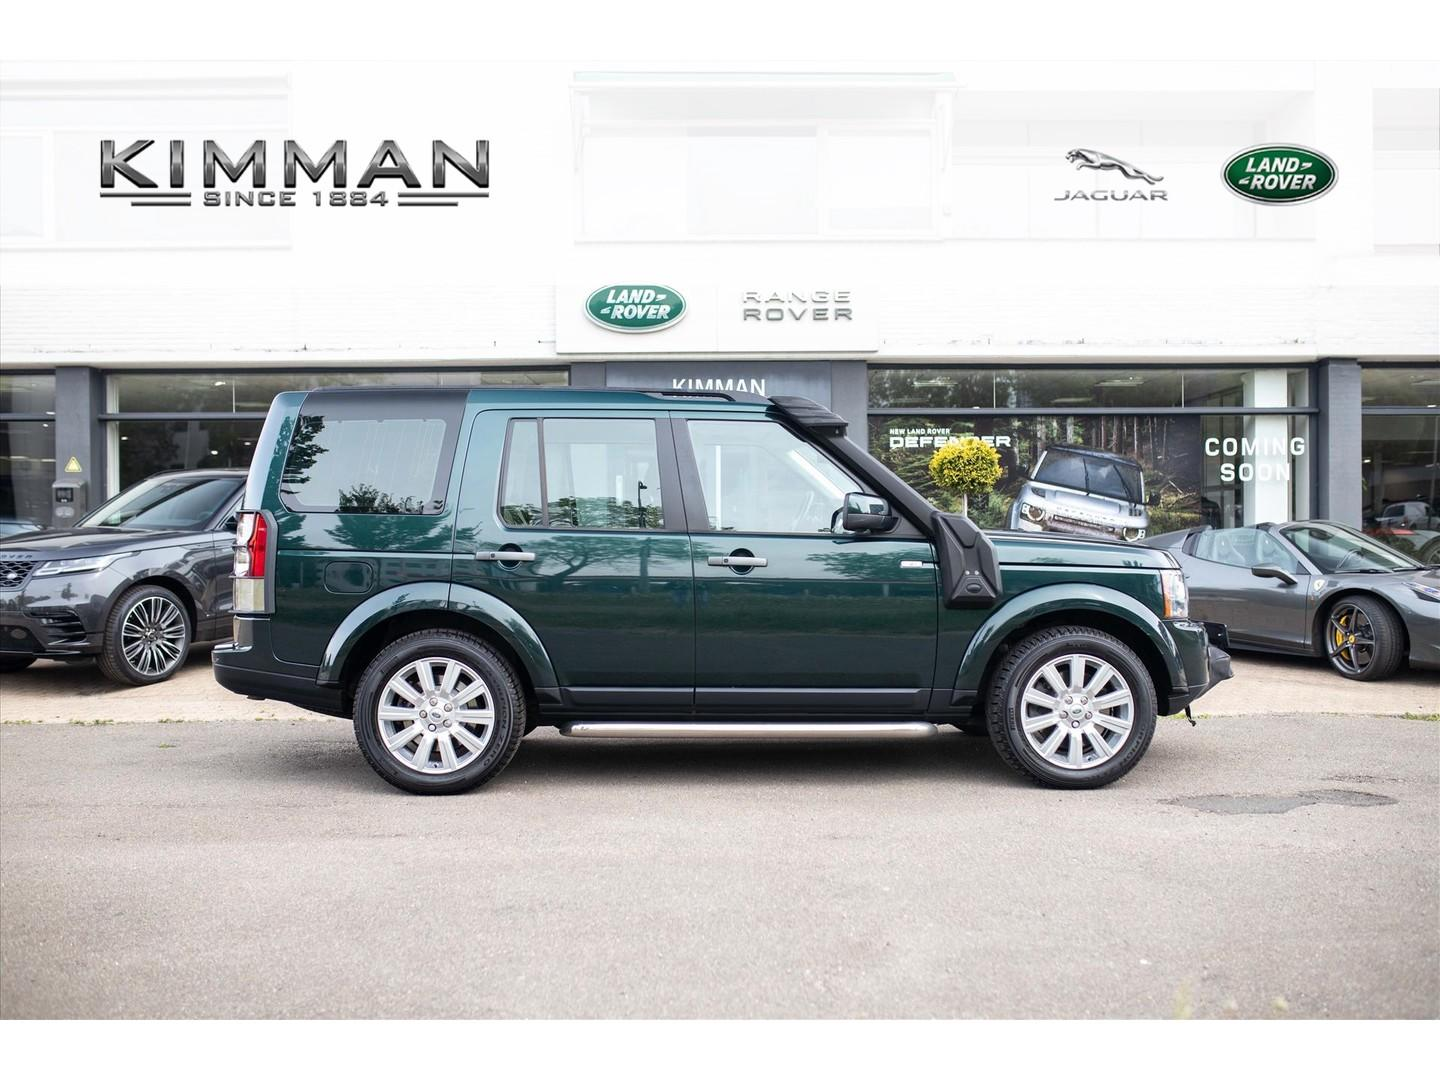 Land rover Discovery 4 3.0 sdv6 aut hse 7 pers!